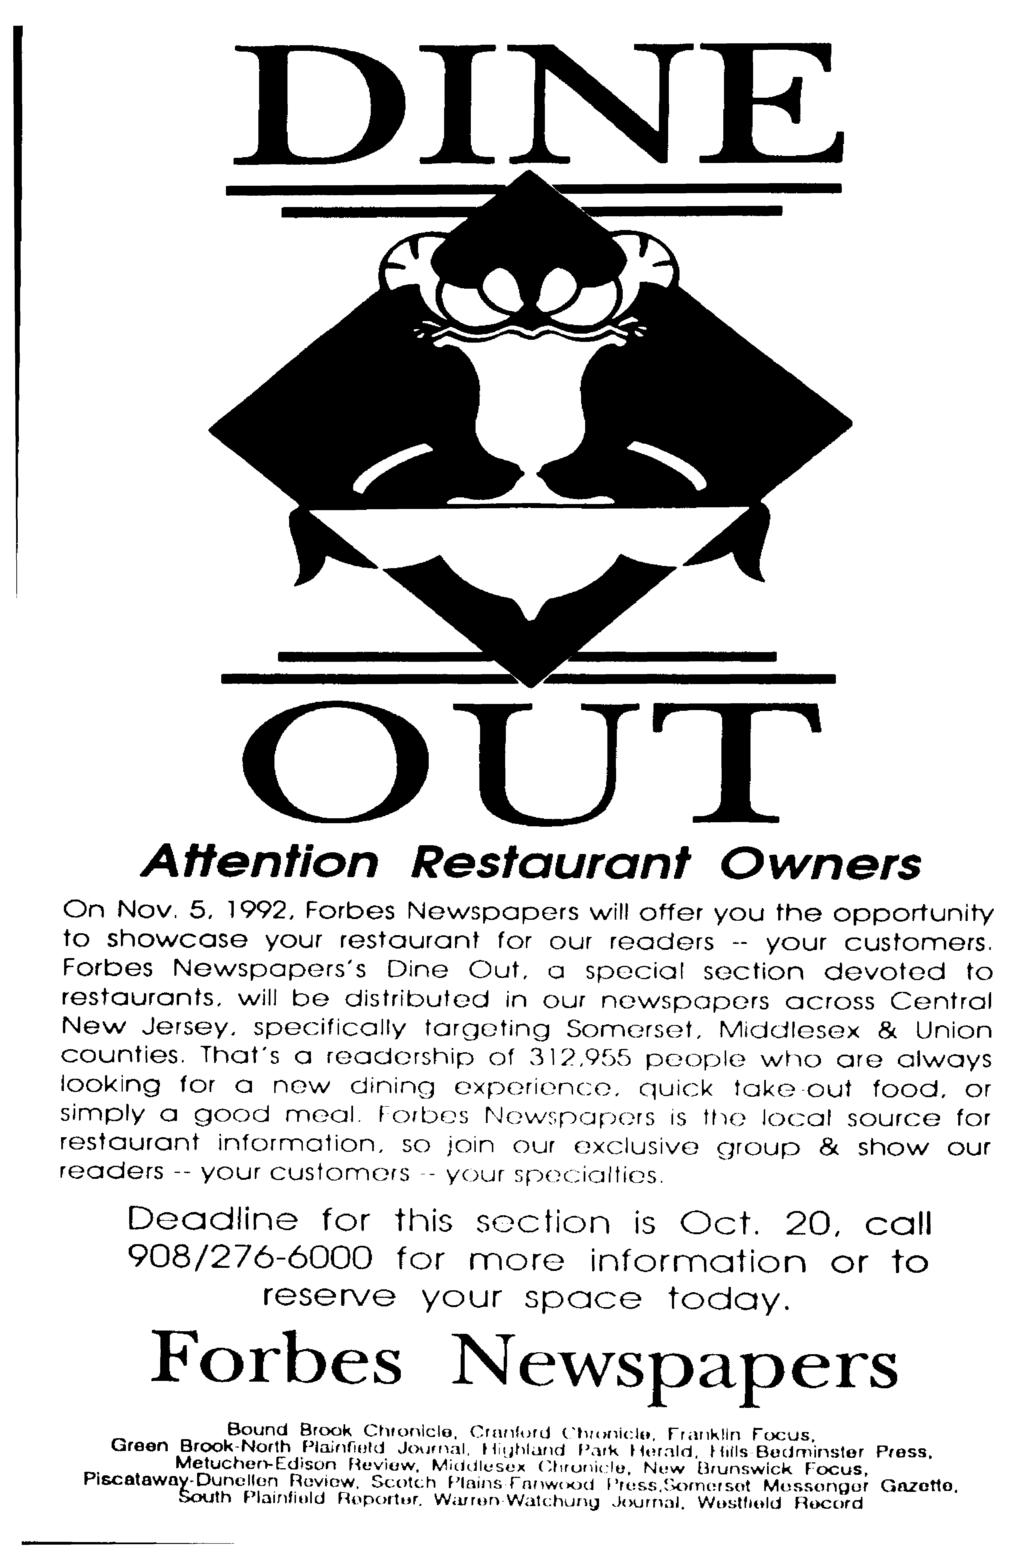 UT Attention Restaurant Owners On Nov. 5, 1992, Forbes Newspapers will offer you the opportunity to showcase your restaurant for our readers -- your customers.